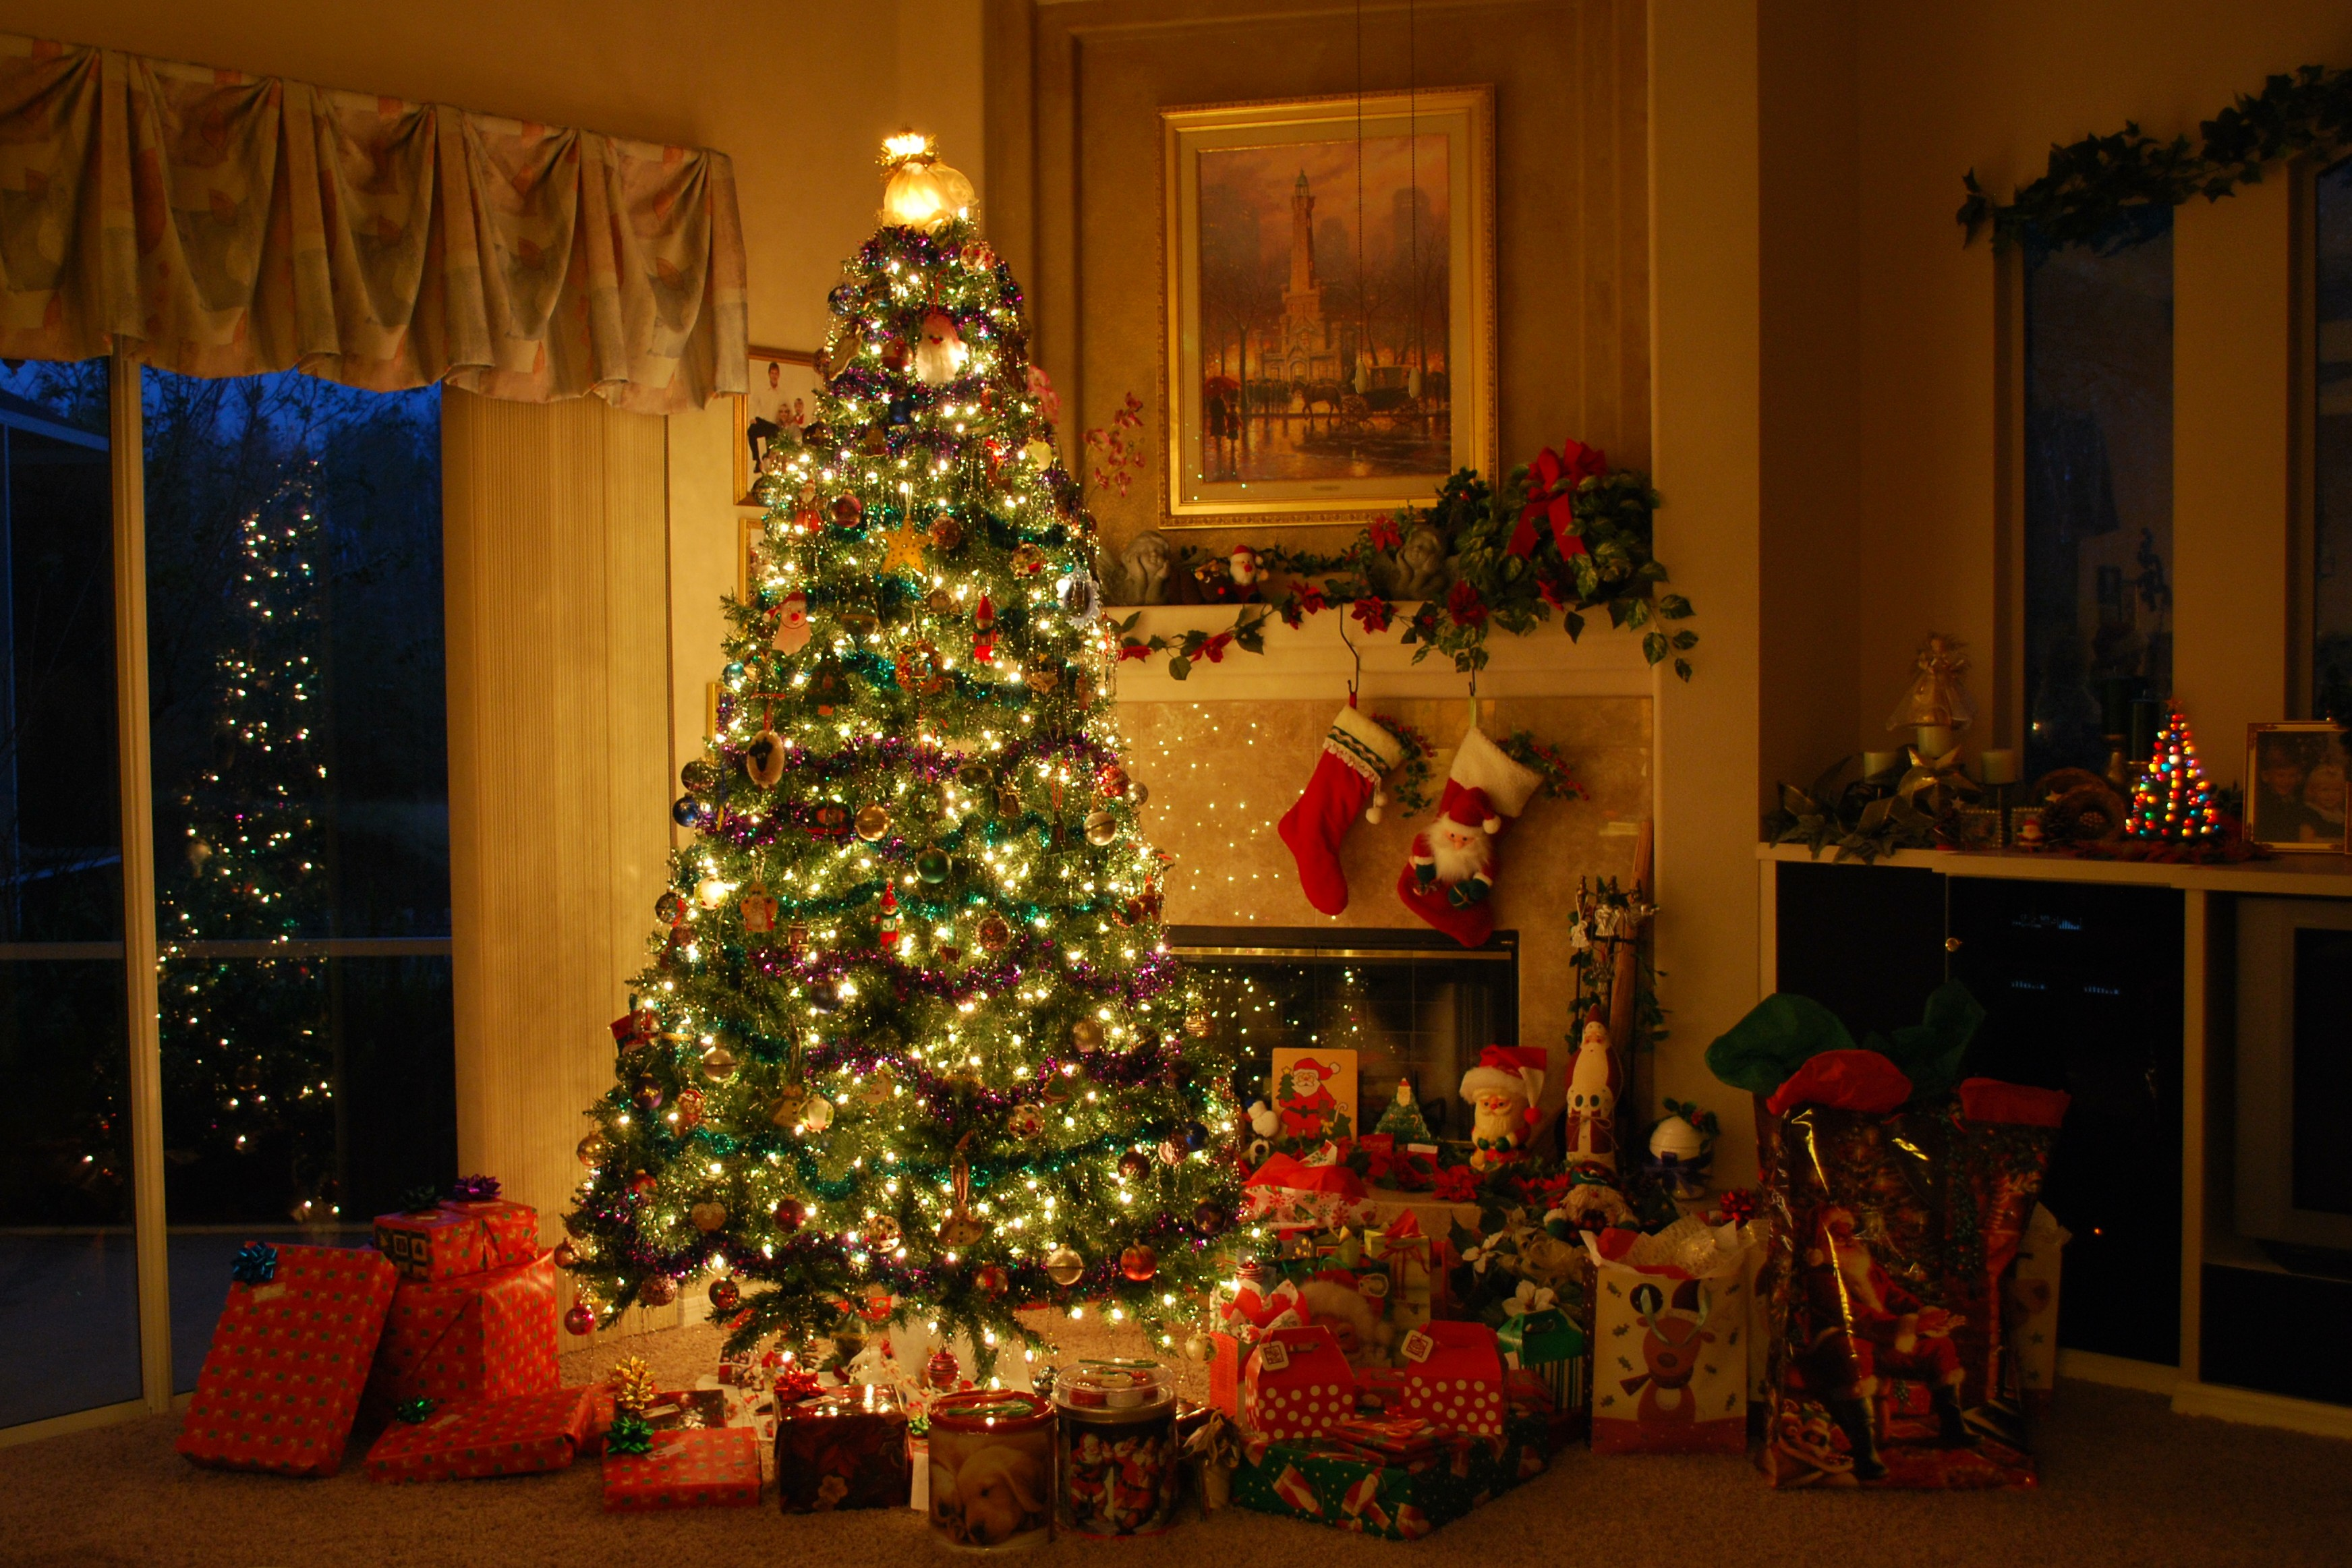 Xmas Inside House Decorations Images